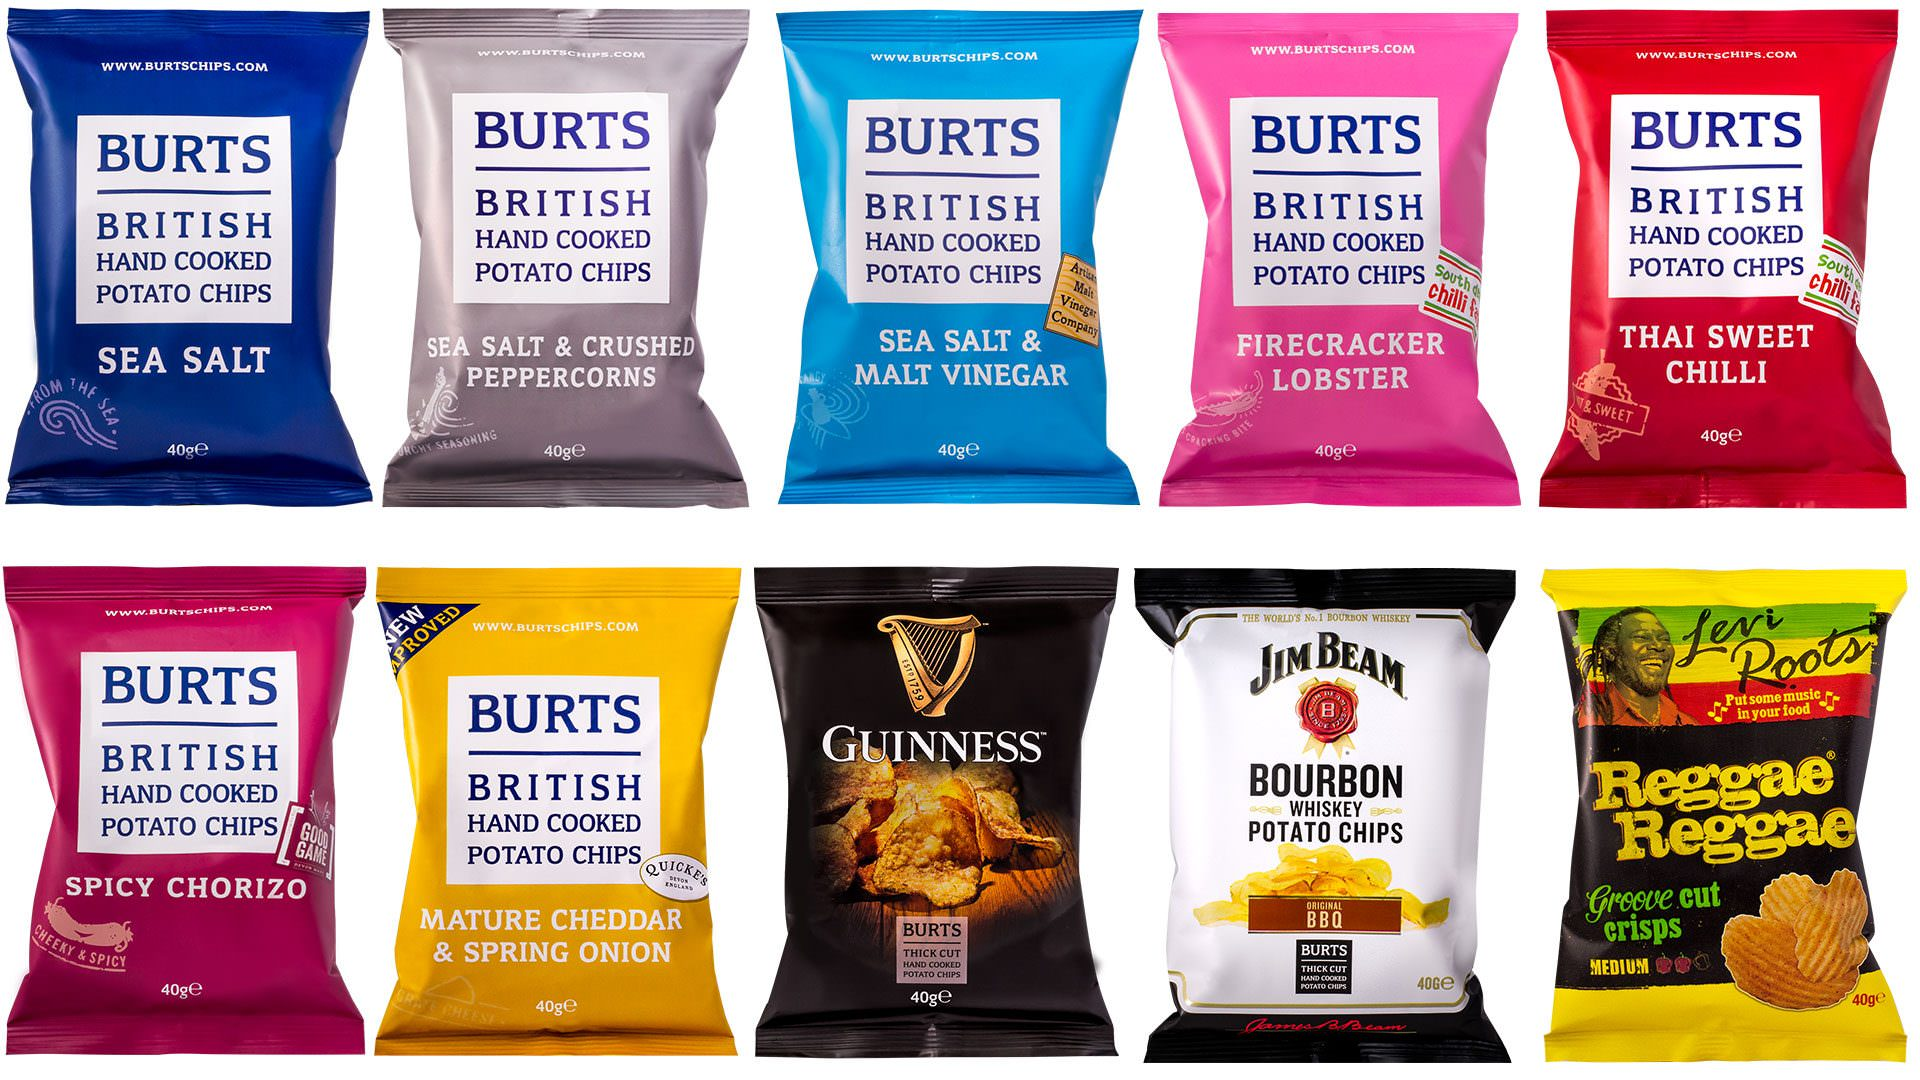 burts snacks packaging photography